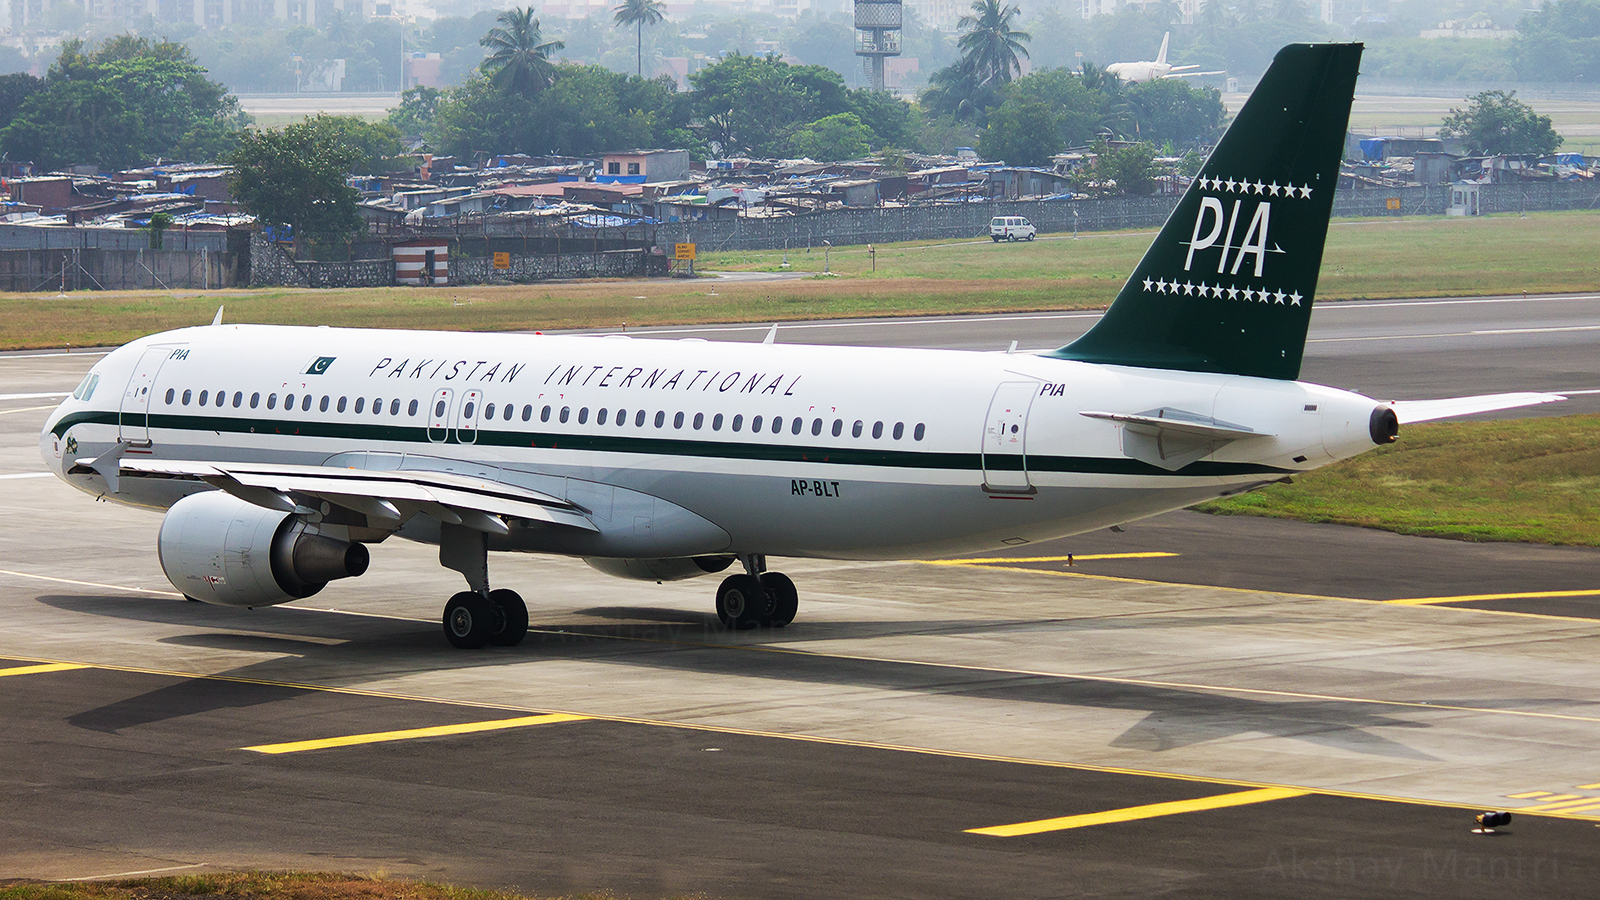 Pakistan International Airlines Flight Delayed For 7 Hours Because A Woman Opened The Emergency Exit Thinking It To Be The Toilet Door